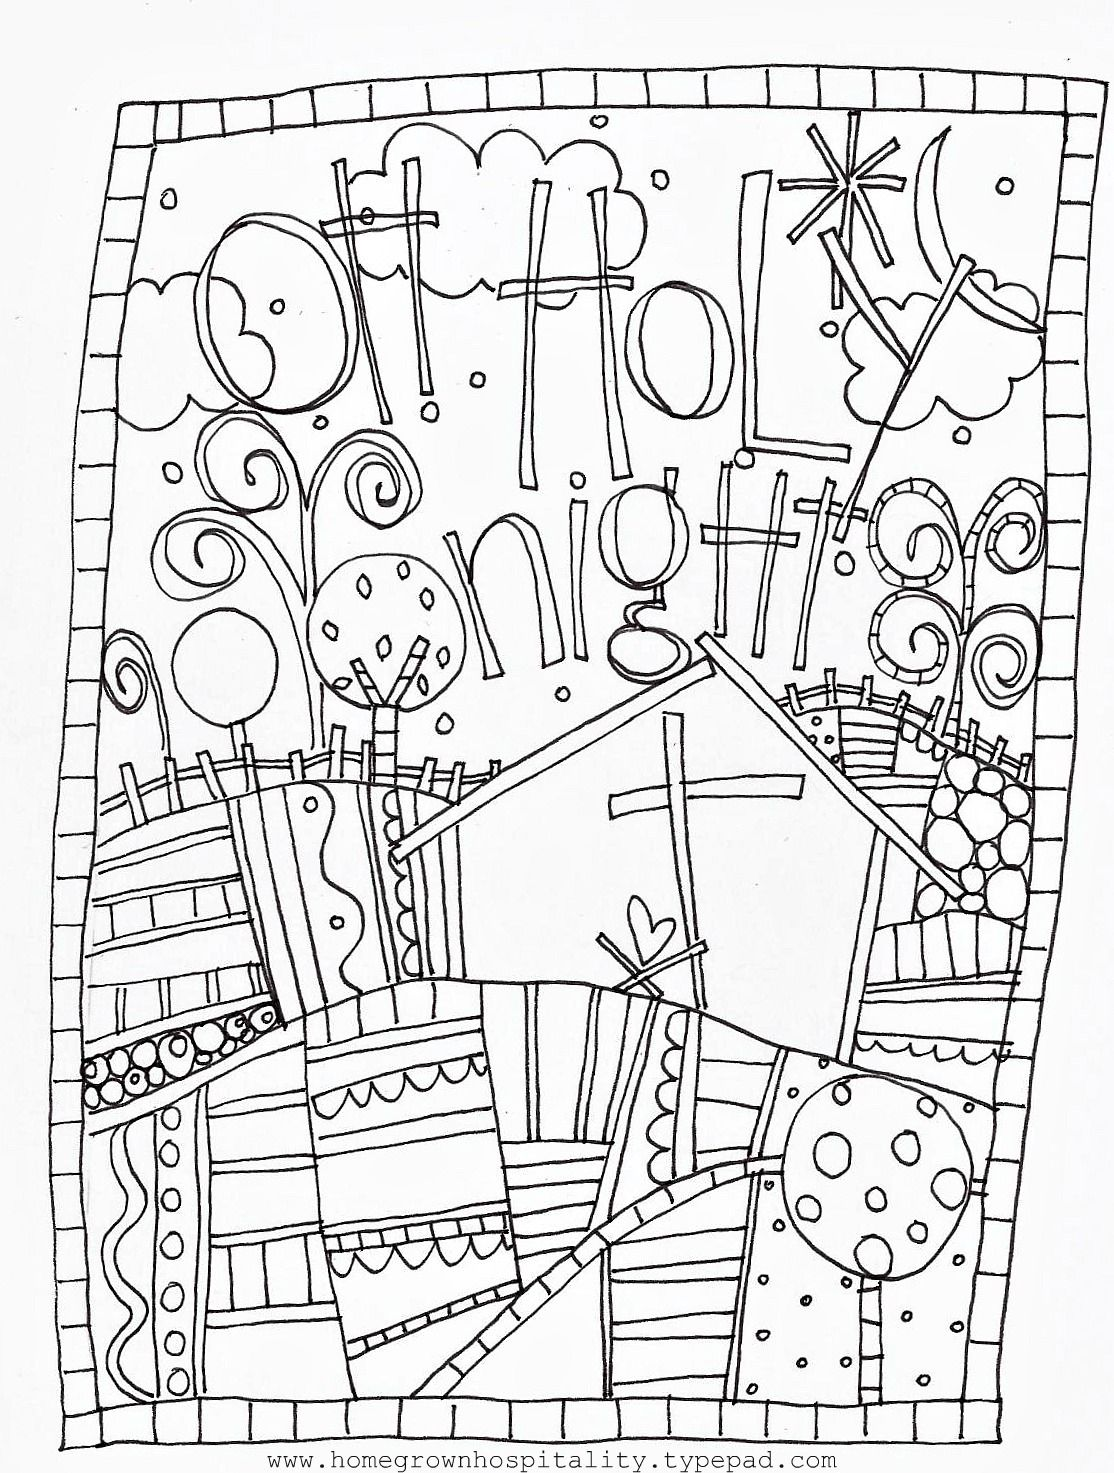 Doodle pages to color - Oh Holy Night Coloring Page From Homegrown Hospitality Kdg Christmaschristmas Doodleschristmas Colouringnight